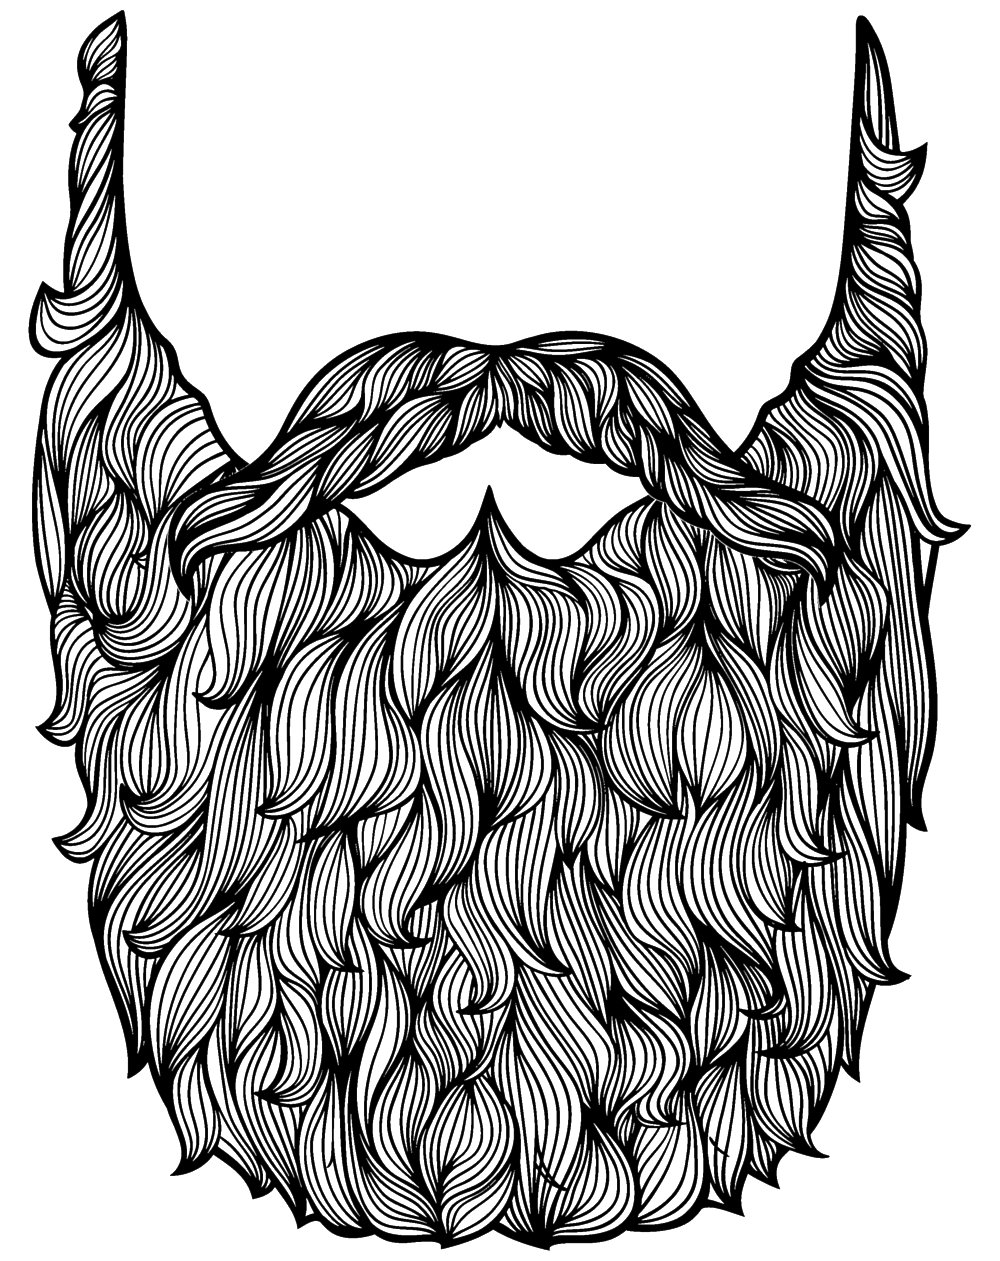 Drawn beard #4